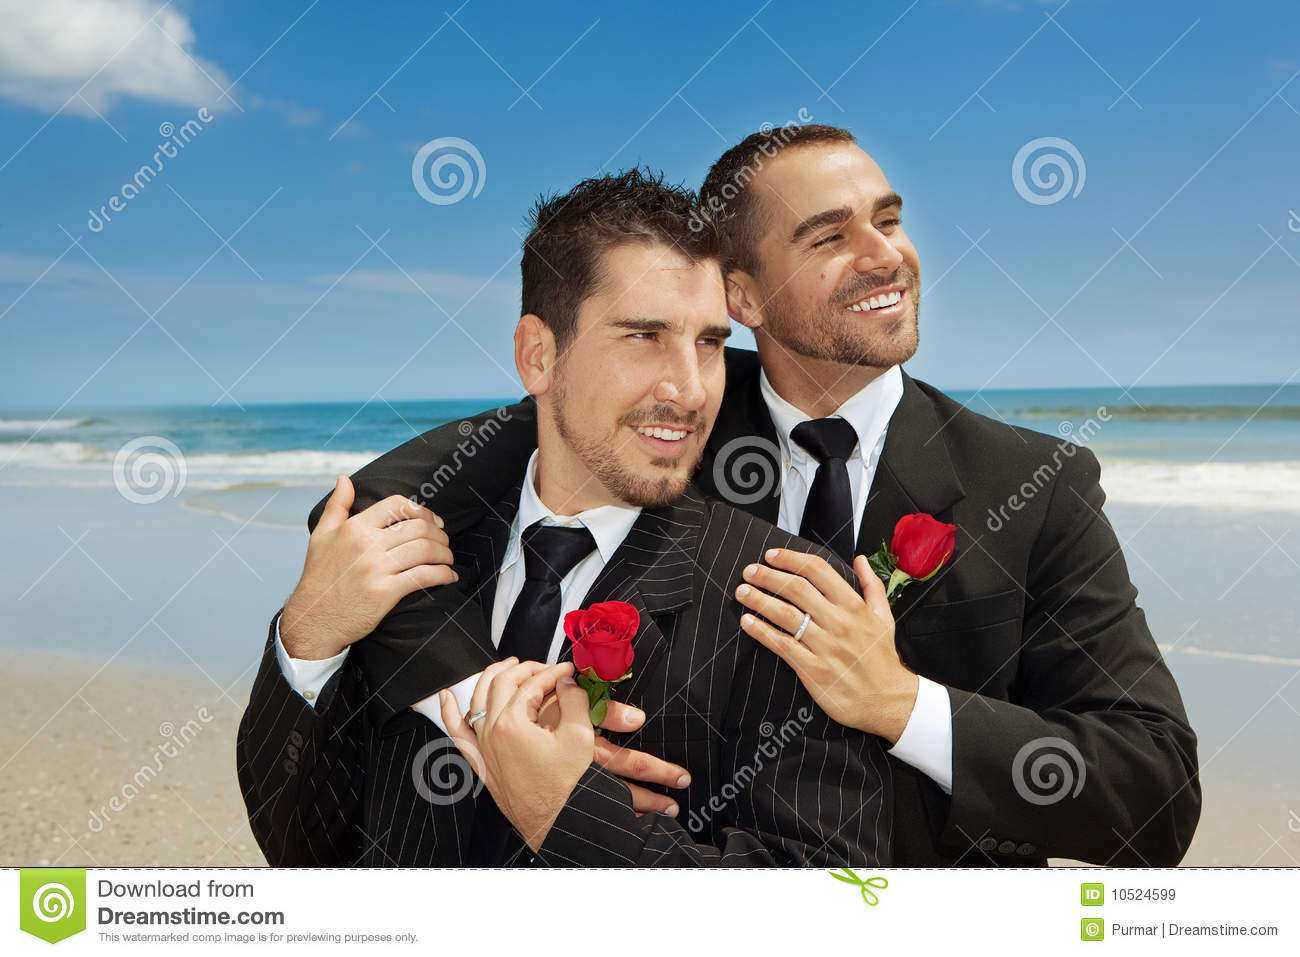 gay men in union suits